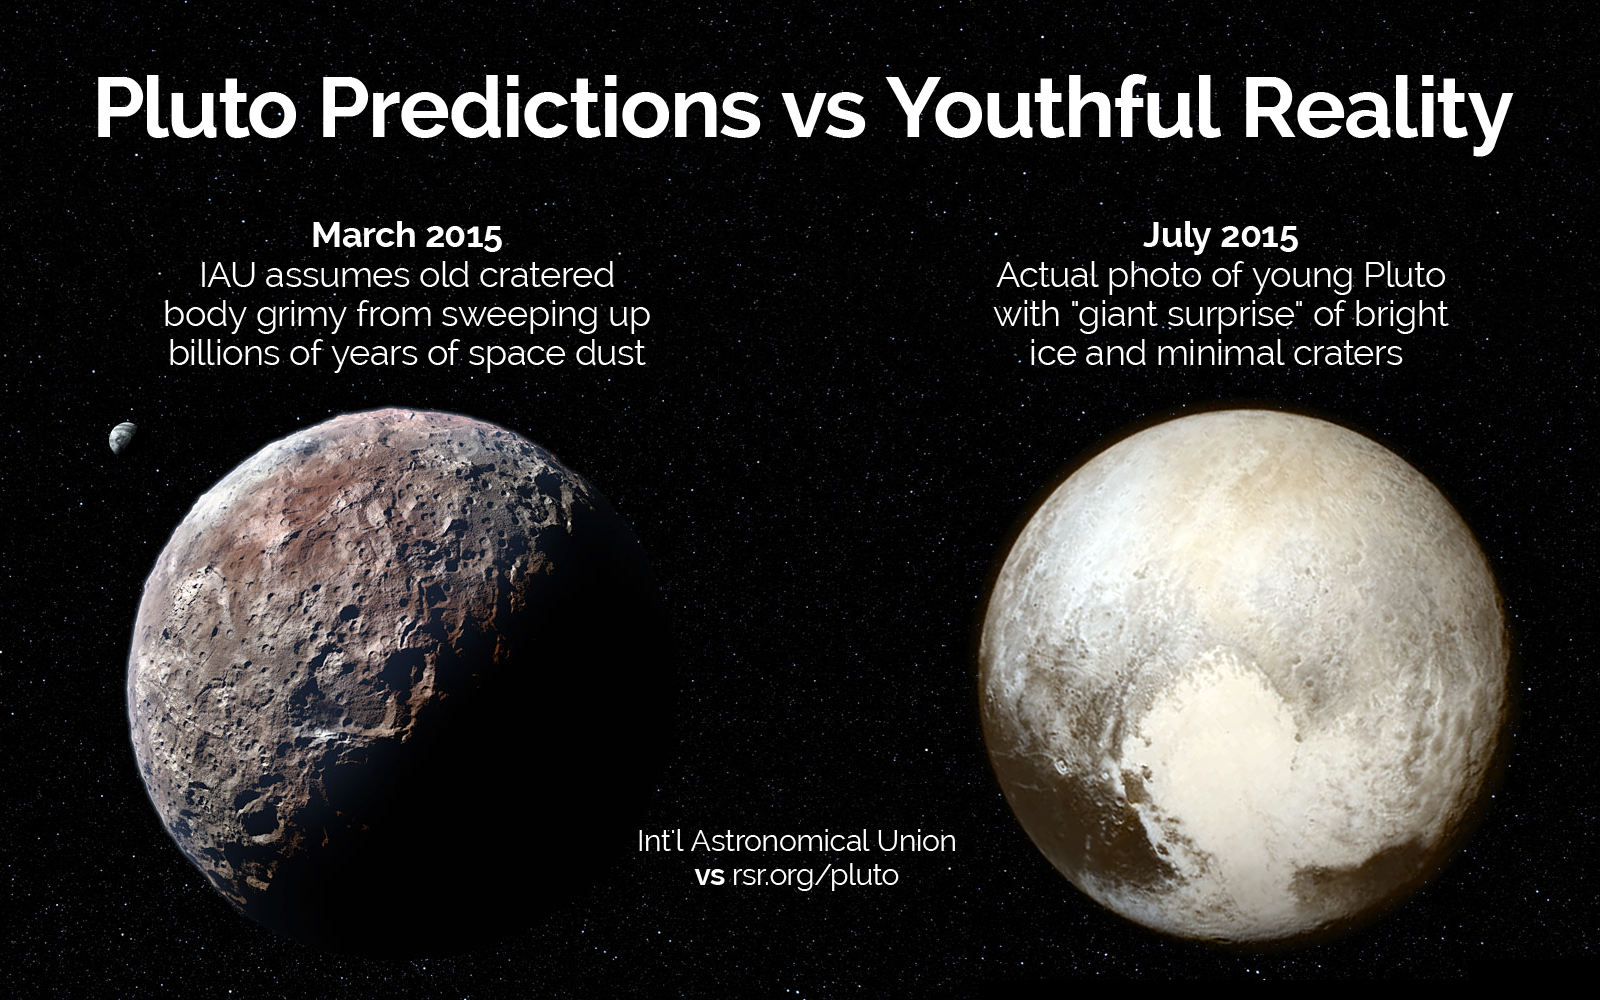 Before NASA's Pluto flyby, comparing their prediction to RSR's prediction of the planet's surface...